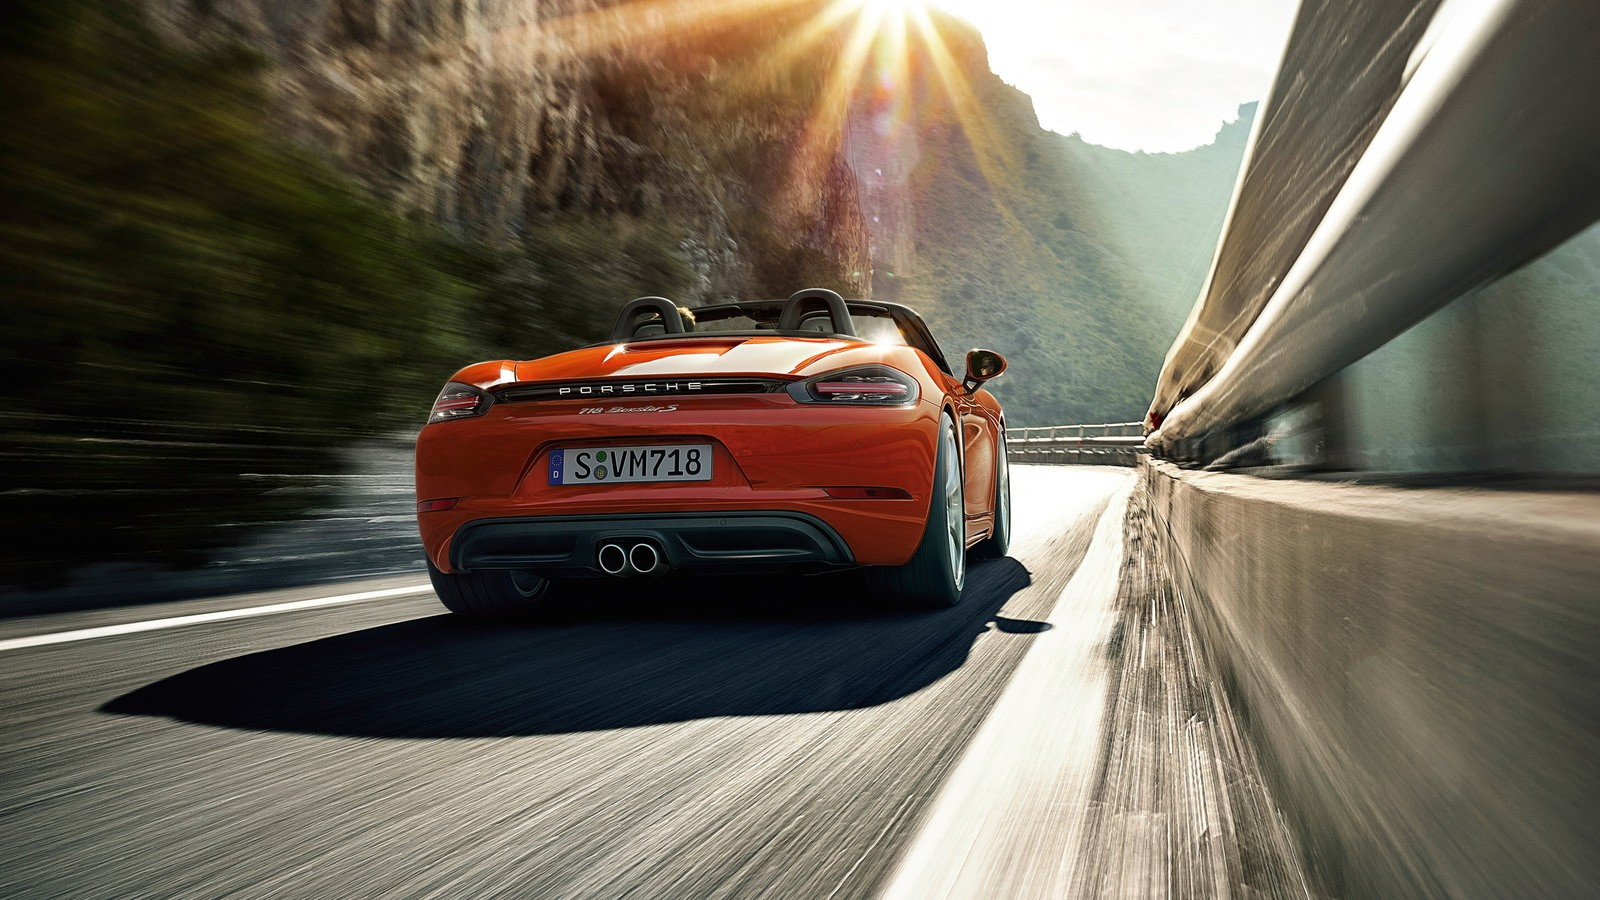 Porsche Boxster S US Wallpapers and HD Images Car Pixel